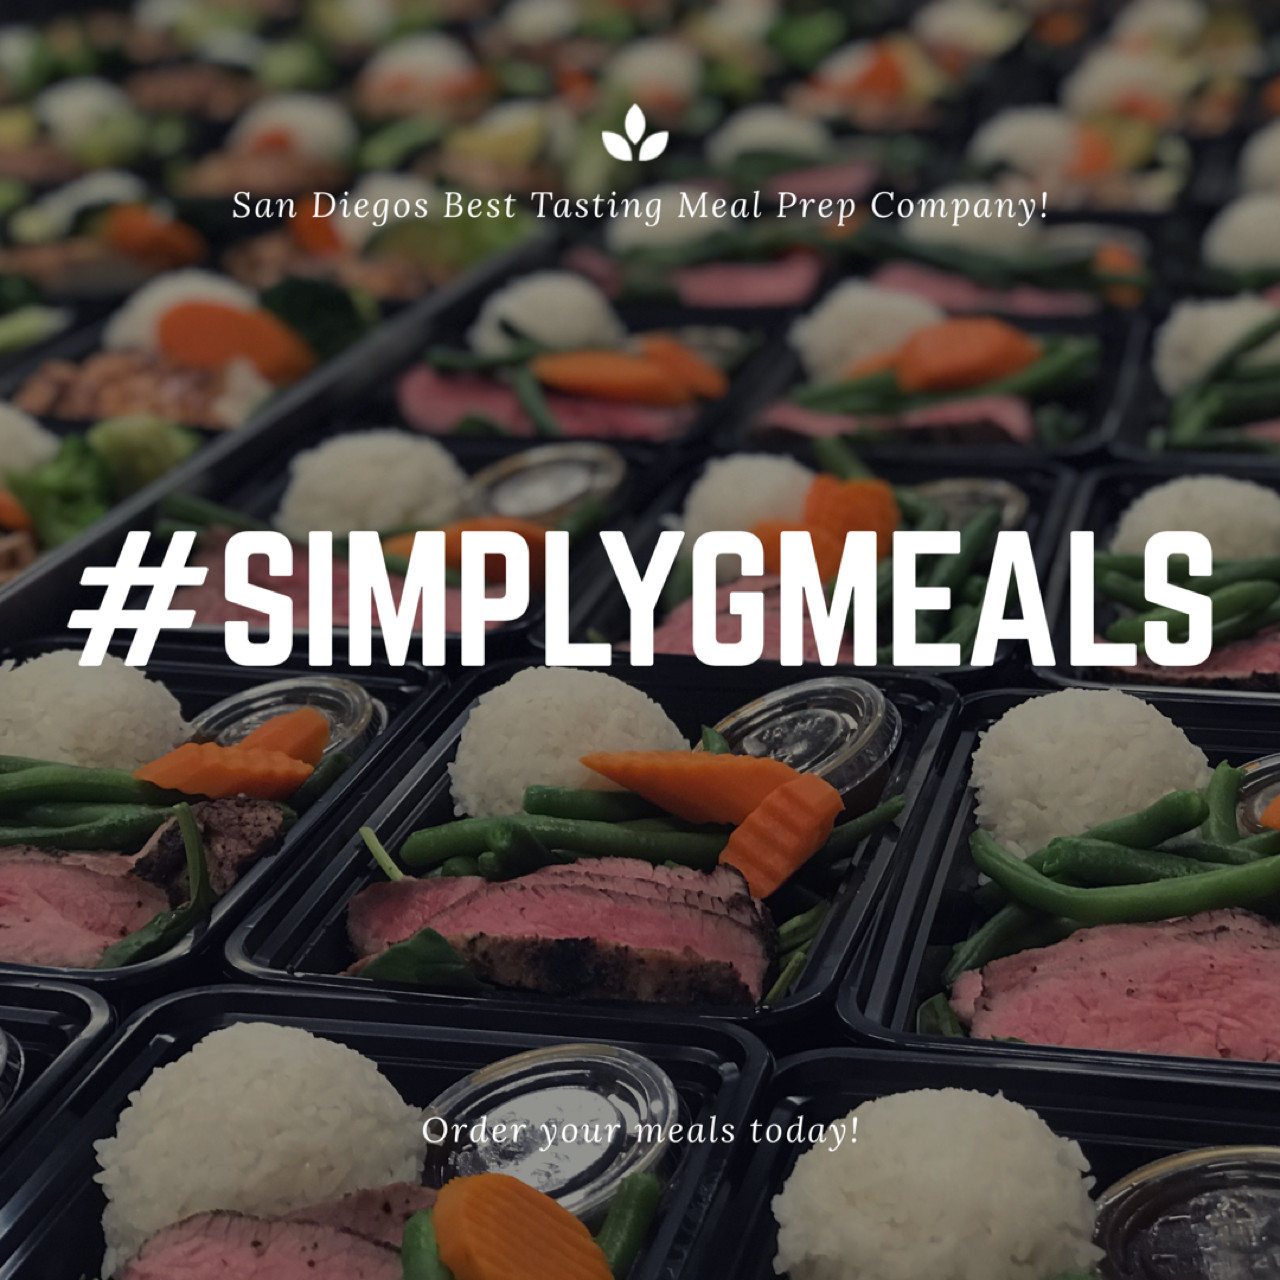 Week Of Meals Promo! (15 Meals)